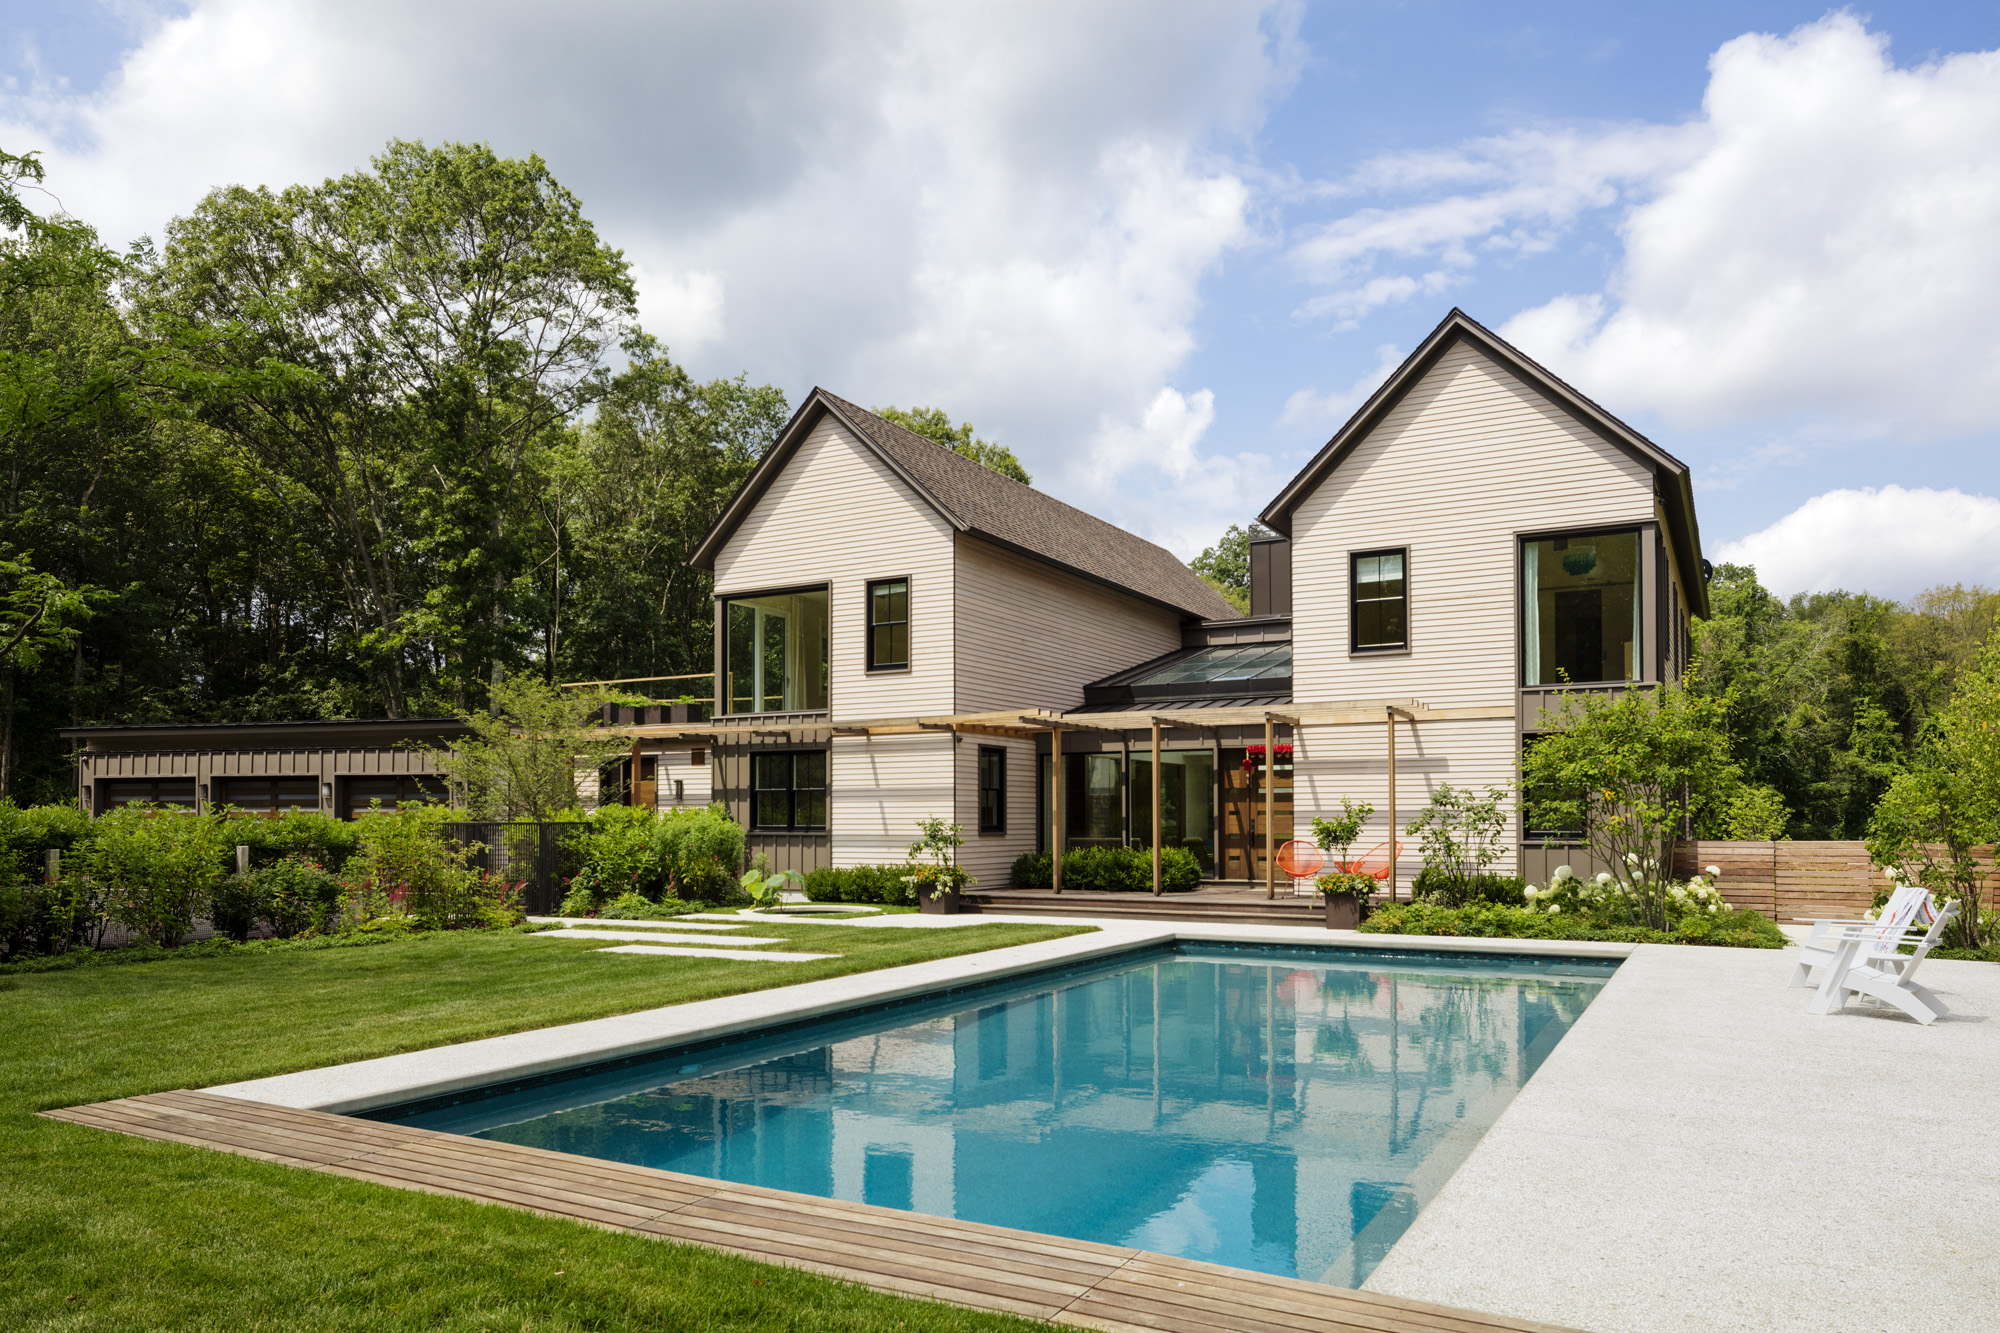 A Vastu Shastra-compliantswimming pool should be placed in the northeast cornerof the lot to balance various energies.On this property, the designers selected the front yard as the ideal location for thepool.